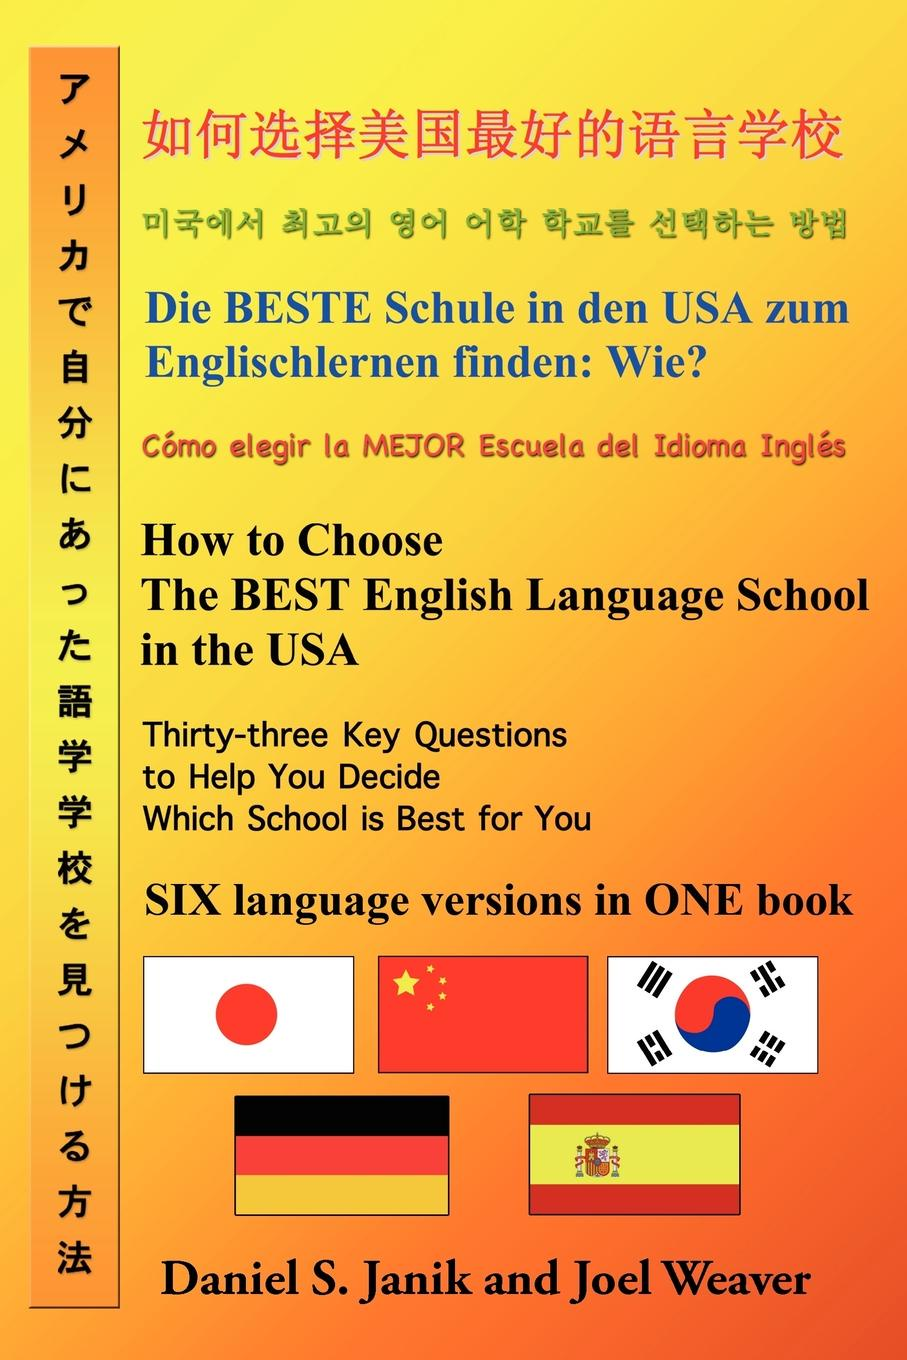 Daniel S. Janik, Joel Weaver How to Choose the Best English Language School in the USA. Thirty-Three Key Questions to Help You Decide Which School Is Best for You in Six Languages carol goman kinsey the silent language of leaders how body language can help or hurt how you lead